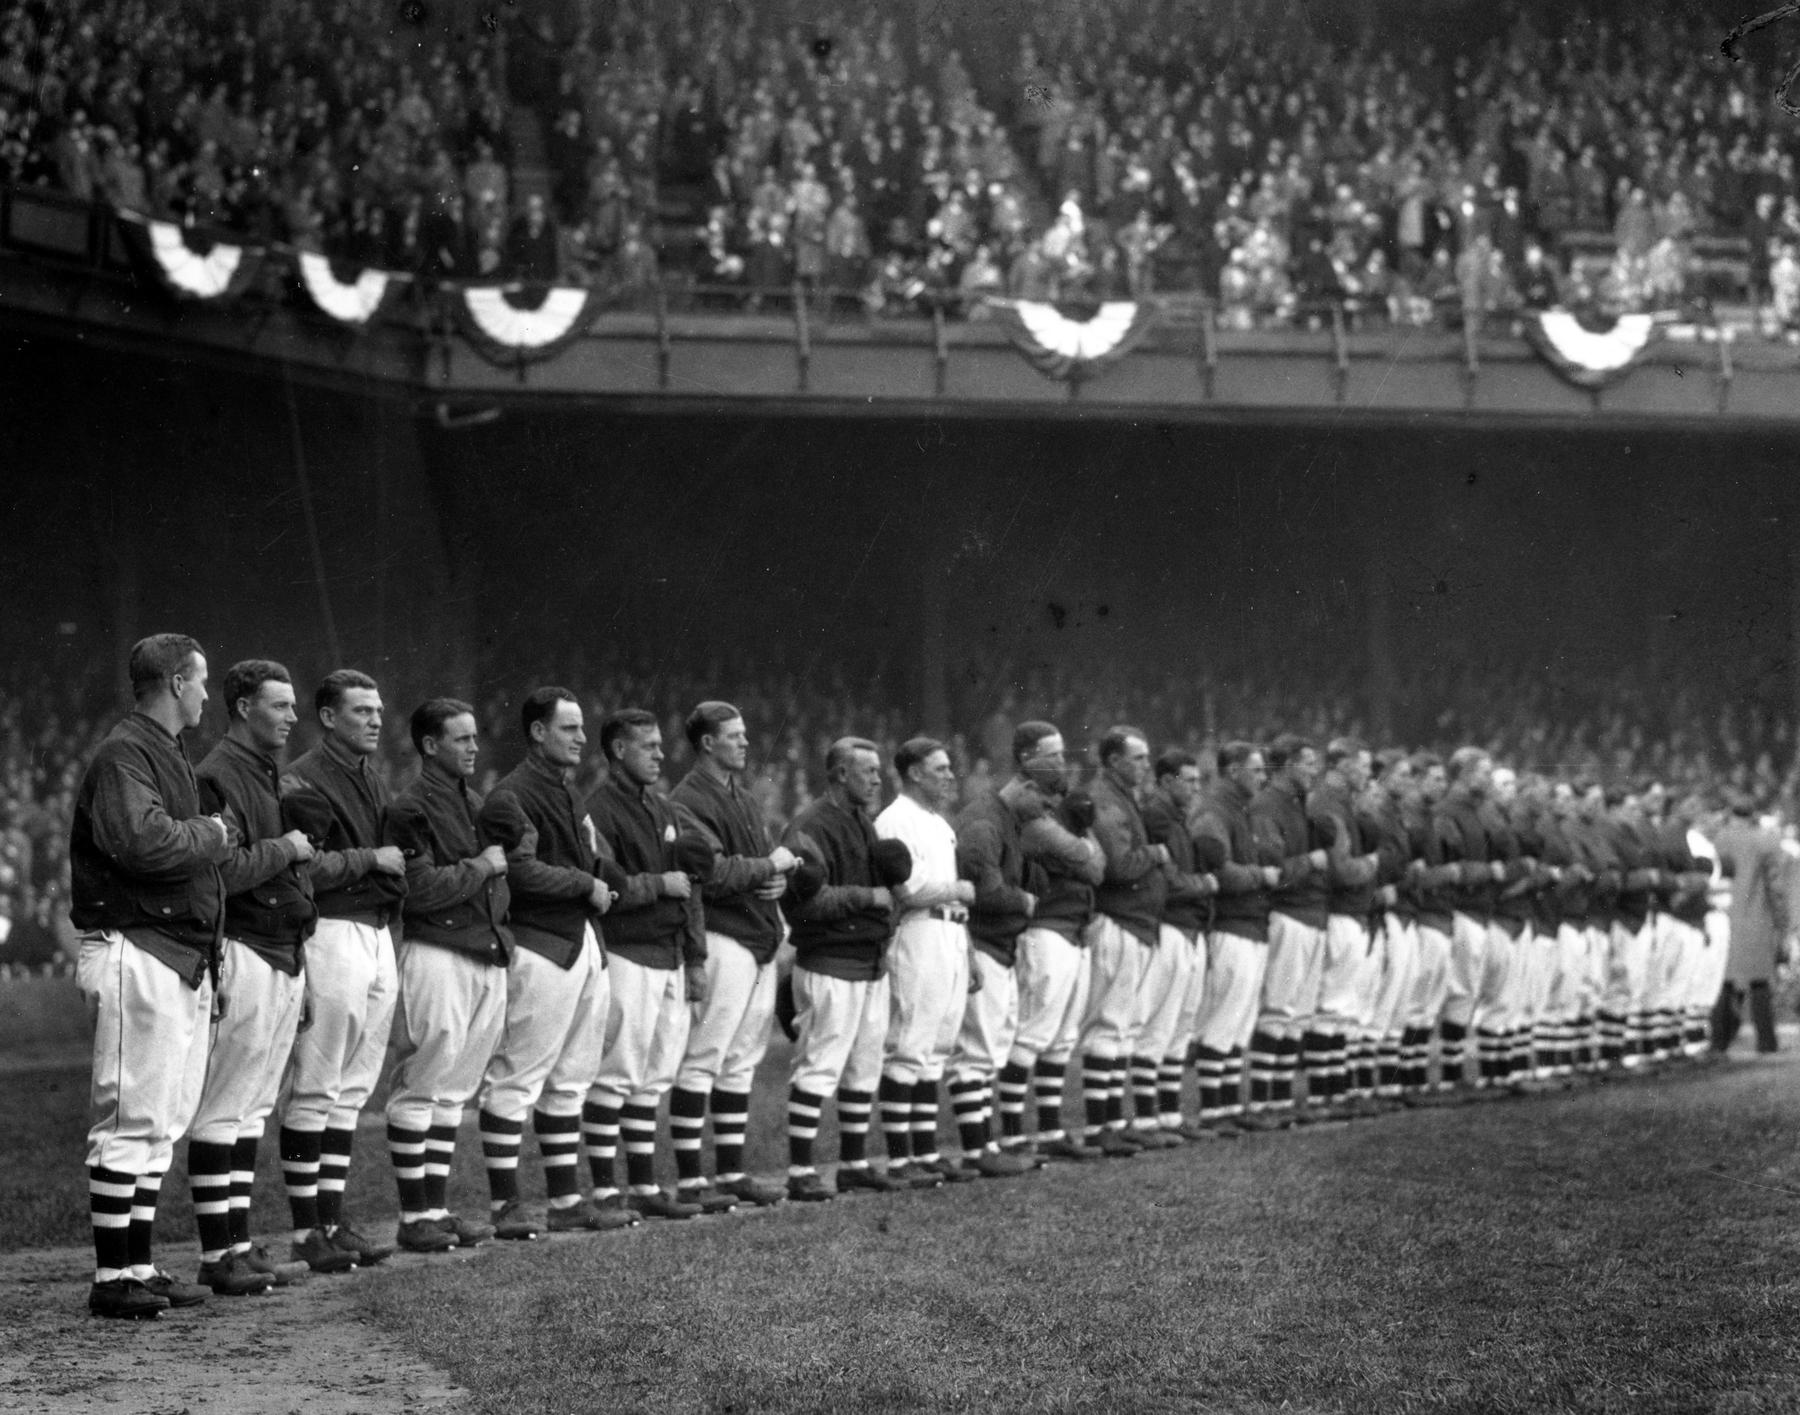 Opening Day, Cleveland, 1930 - BL-1426-92 (Louis Van Oeyen/National Baseball Hall of Fame Library)